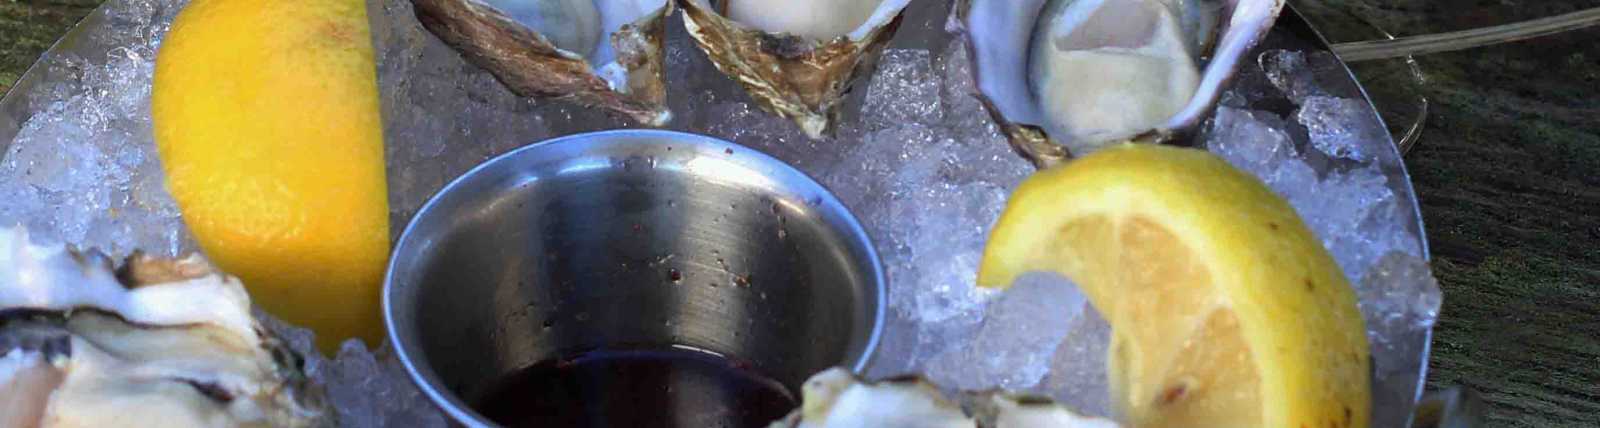 Oysters and White Wine by Celeste Stubner